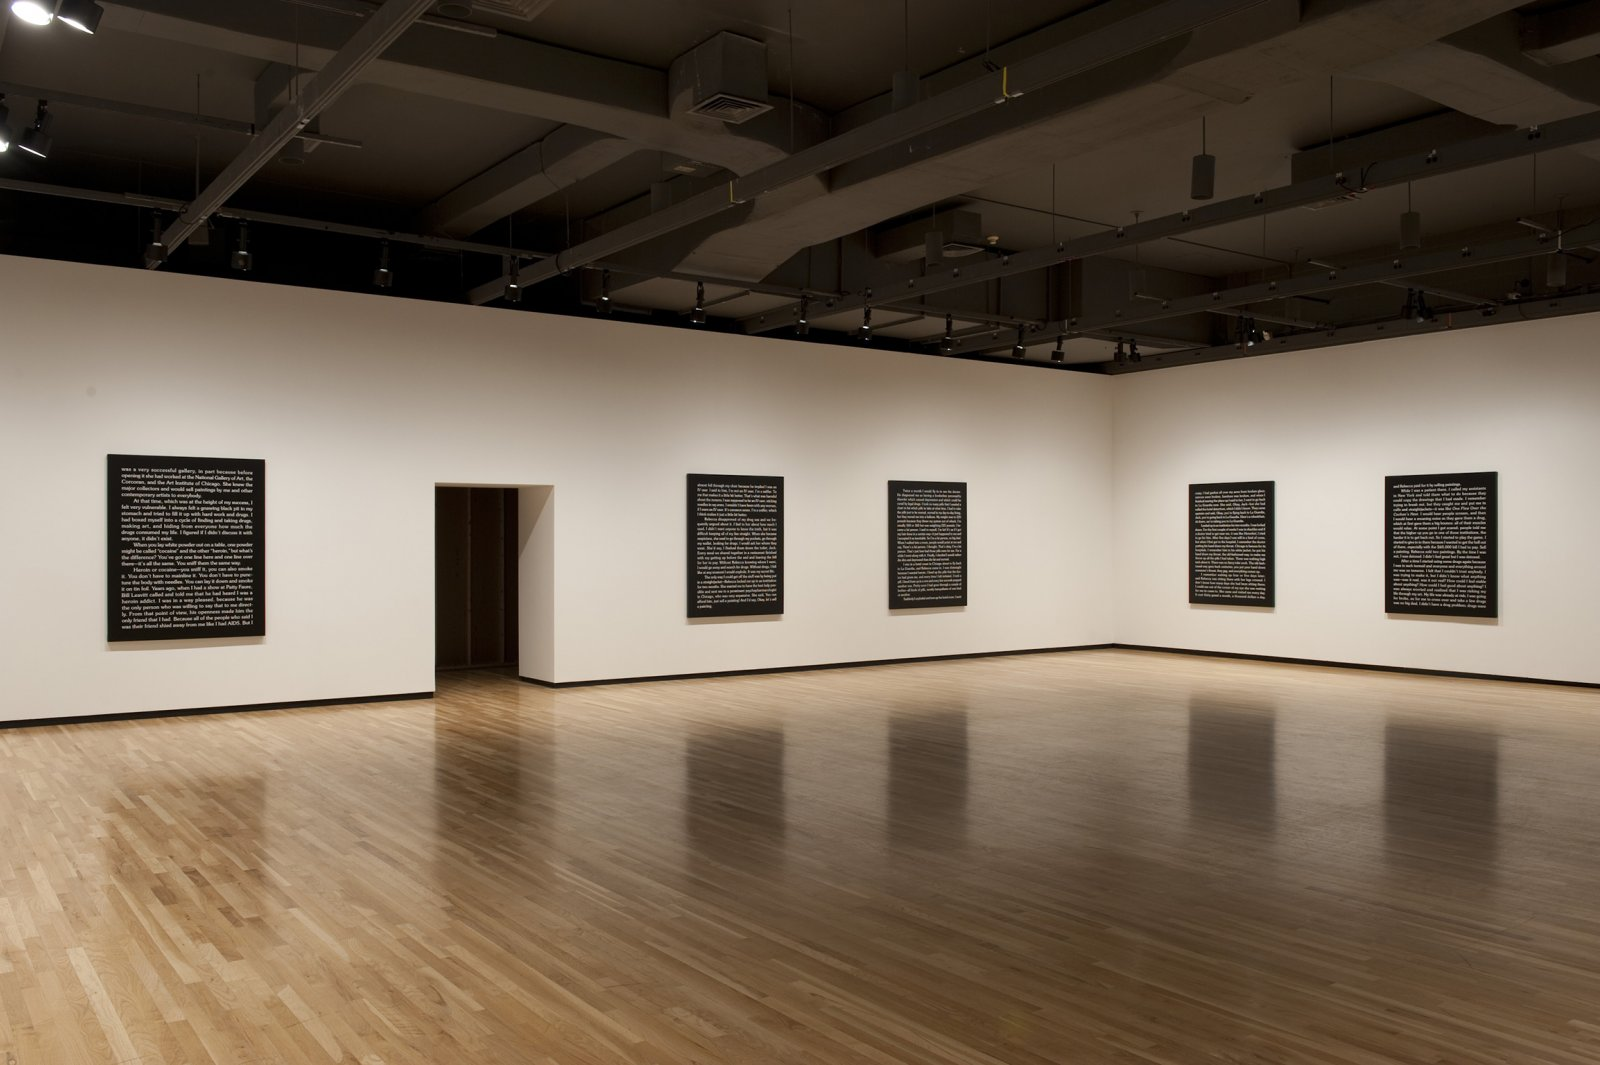 Ron Terada, Jack, 2010, acrylic on canvas, each 60 x 48 in. (152 x 122 cm). Installation view, Who I Think I Am, Walter Phillips Gallery, Banff, AB, 2010